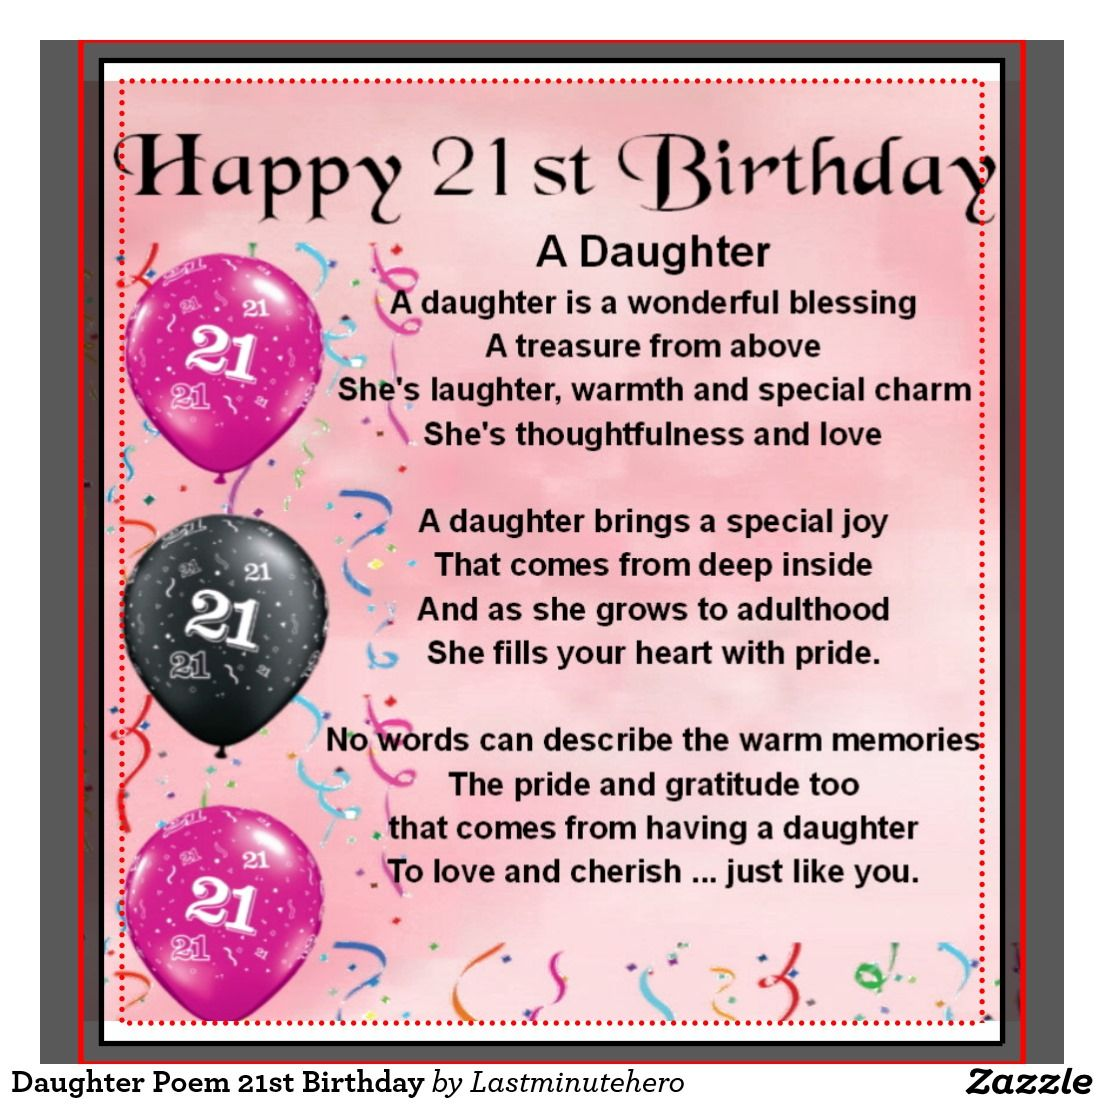 Daughter 21st Birthday Poem Images